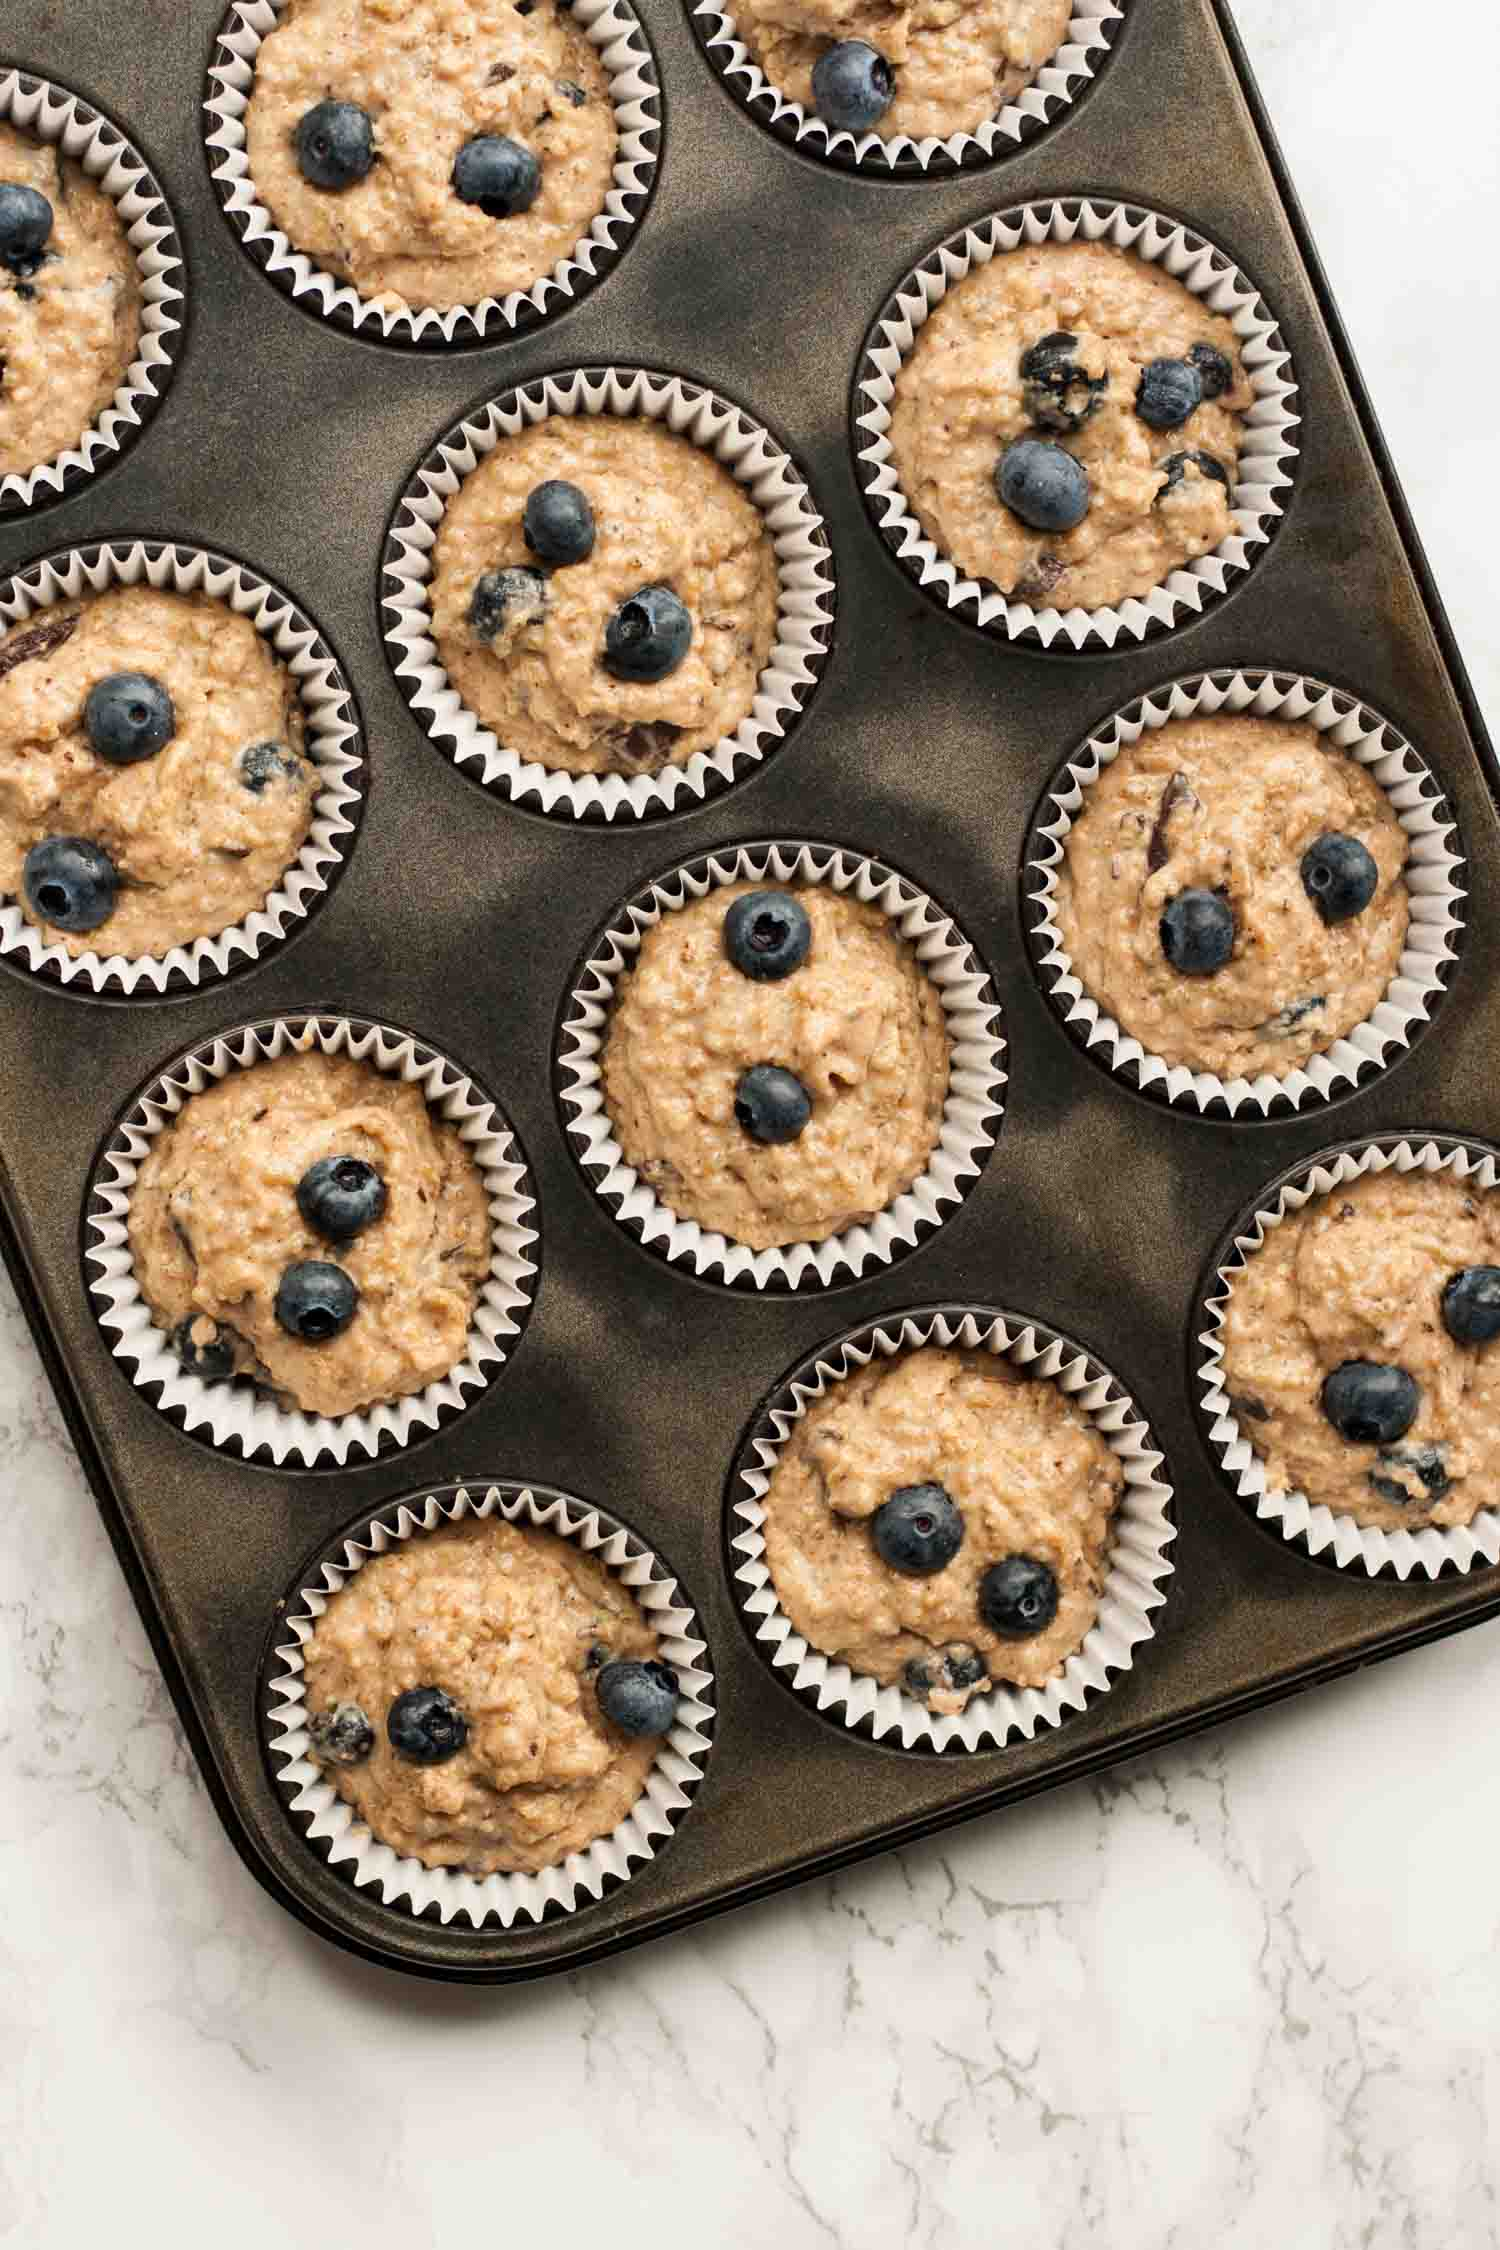 Quinoa Spelt Blueberry Breakfast Muffins - these easy breakfast muffins are full of goodness and taste amazing with a drizzle of warmed maple syrup!   eatloveeats.com